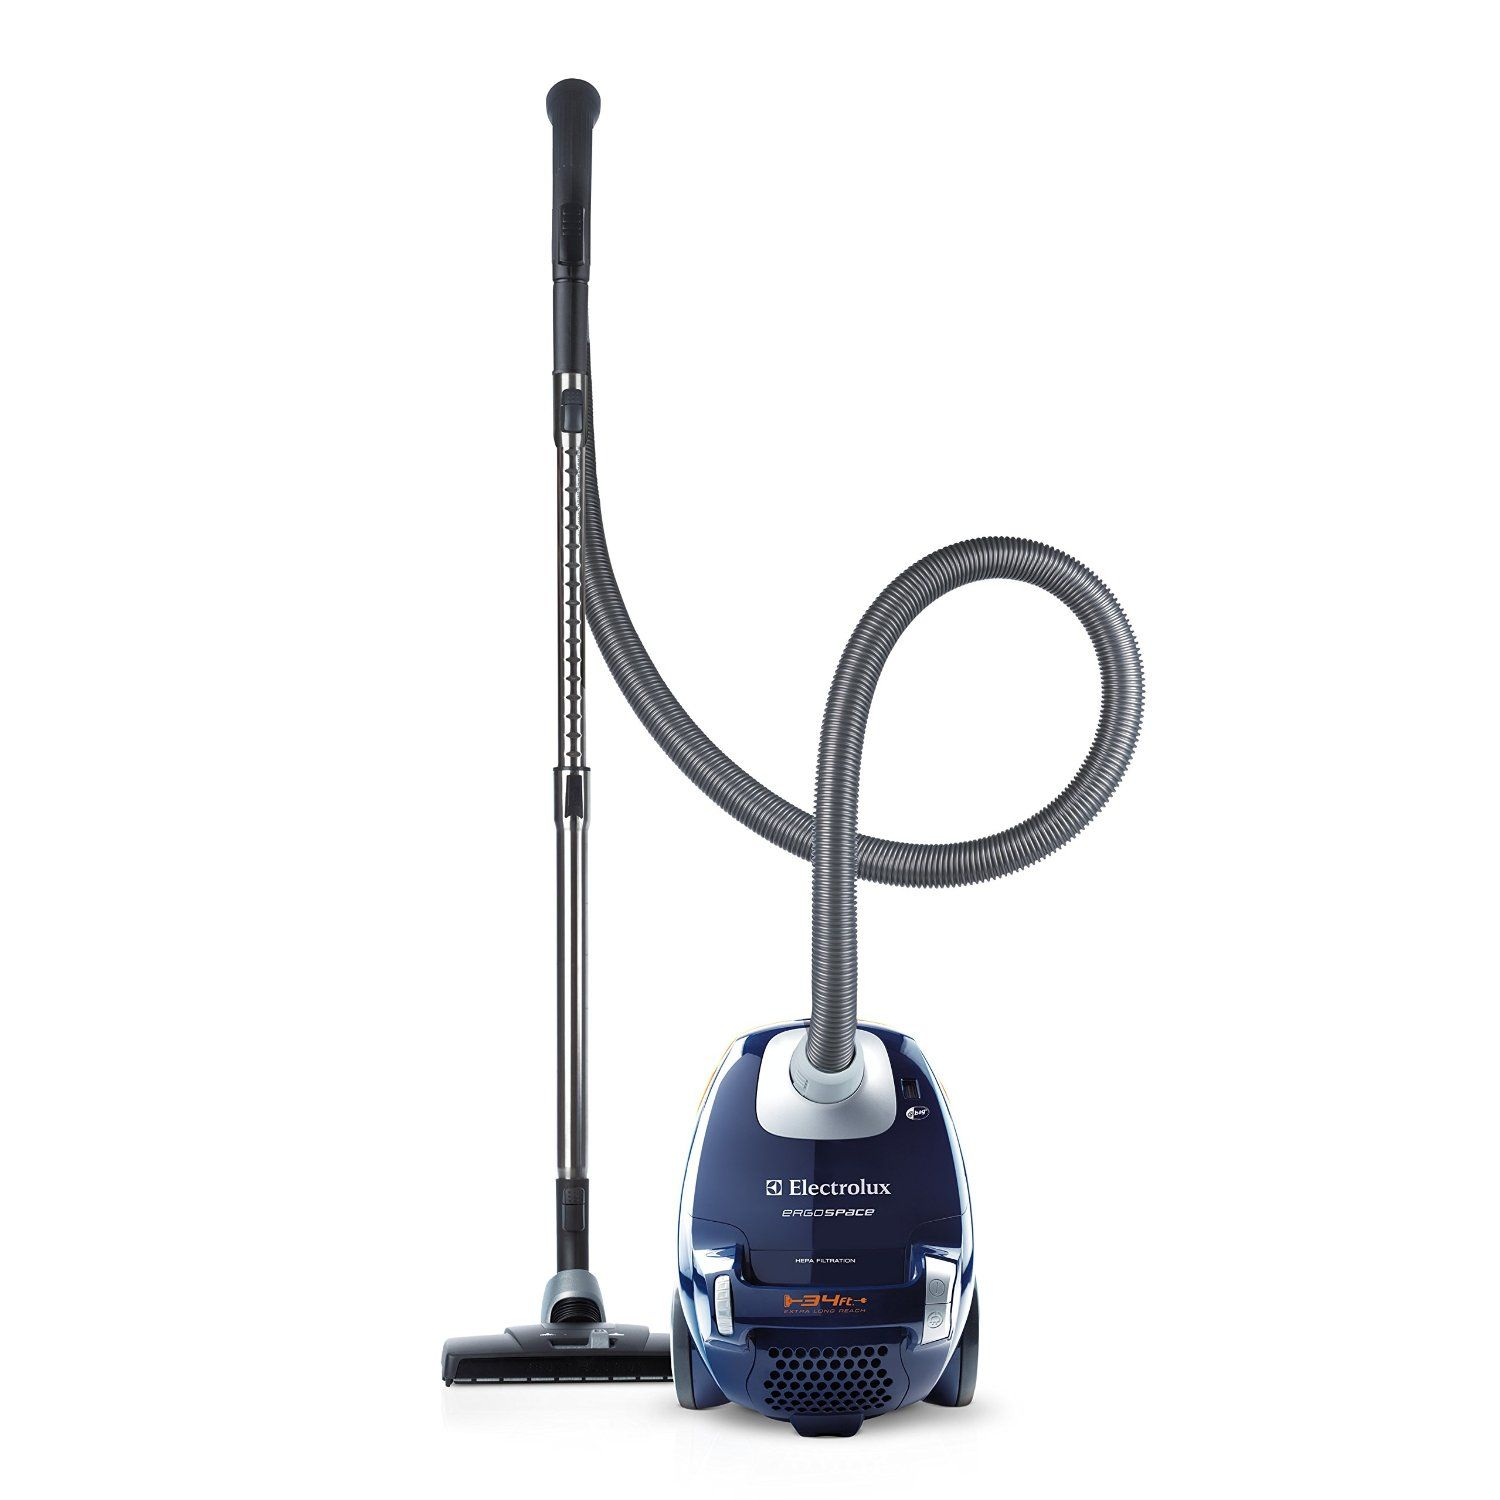 Electrolux Ergoe Bagged Canister Vacuum El4103a Is A Ful Cleaning Agent That Gives You Effective Operation All Around Your House With Its